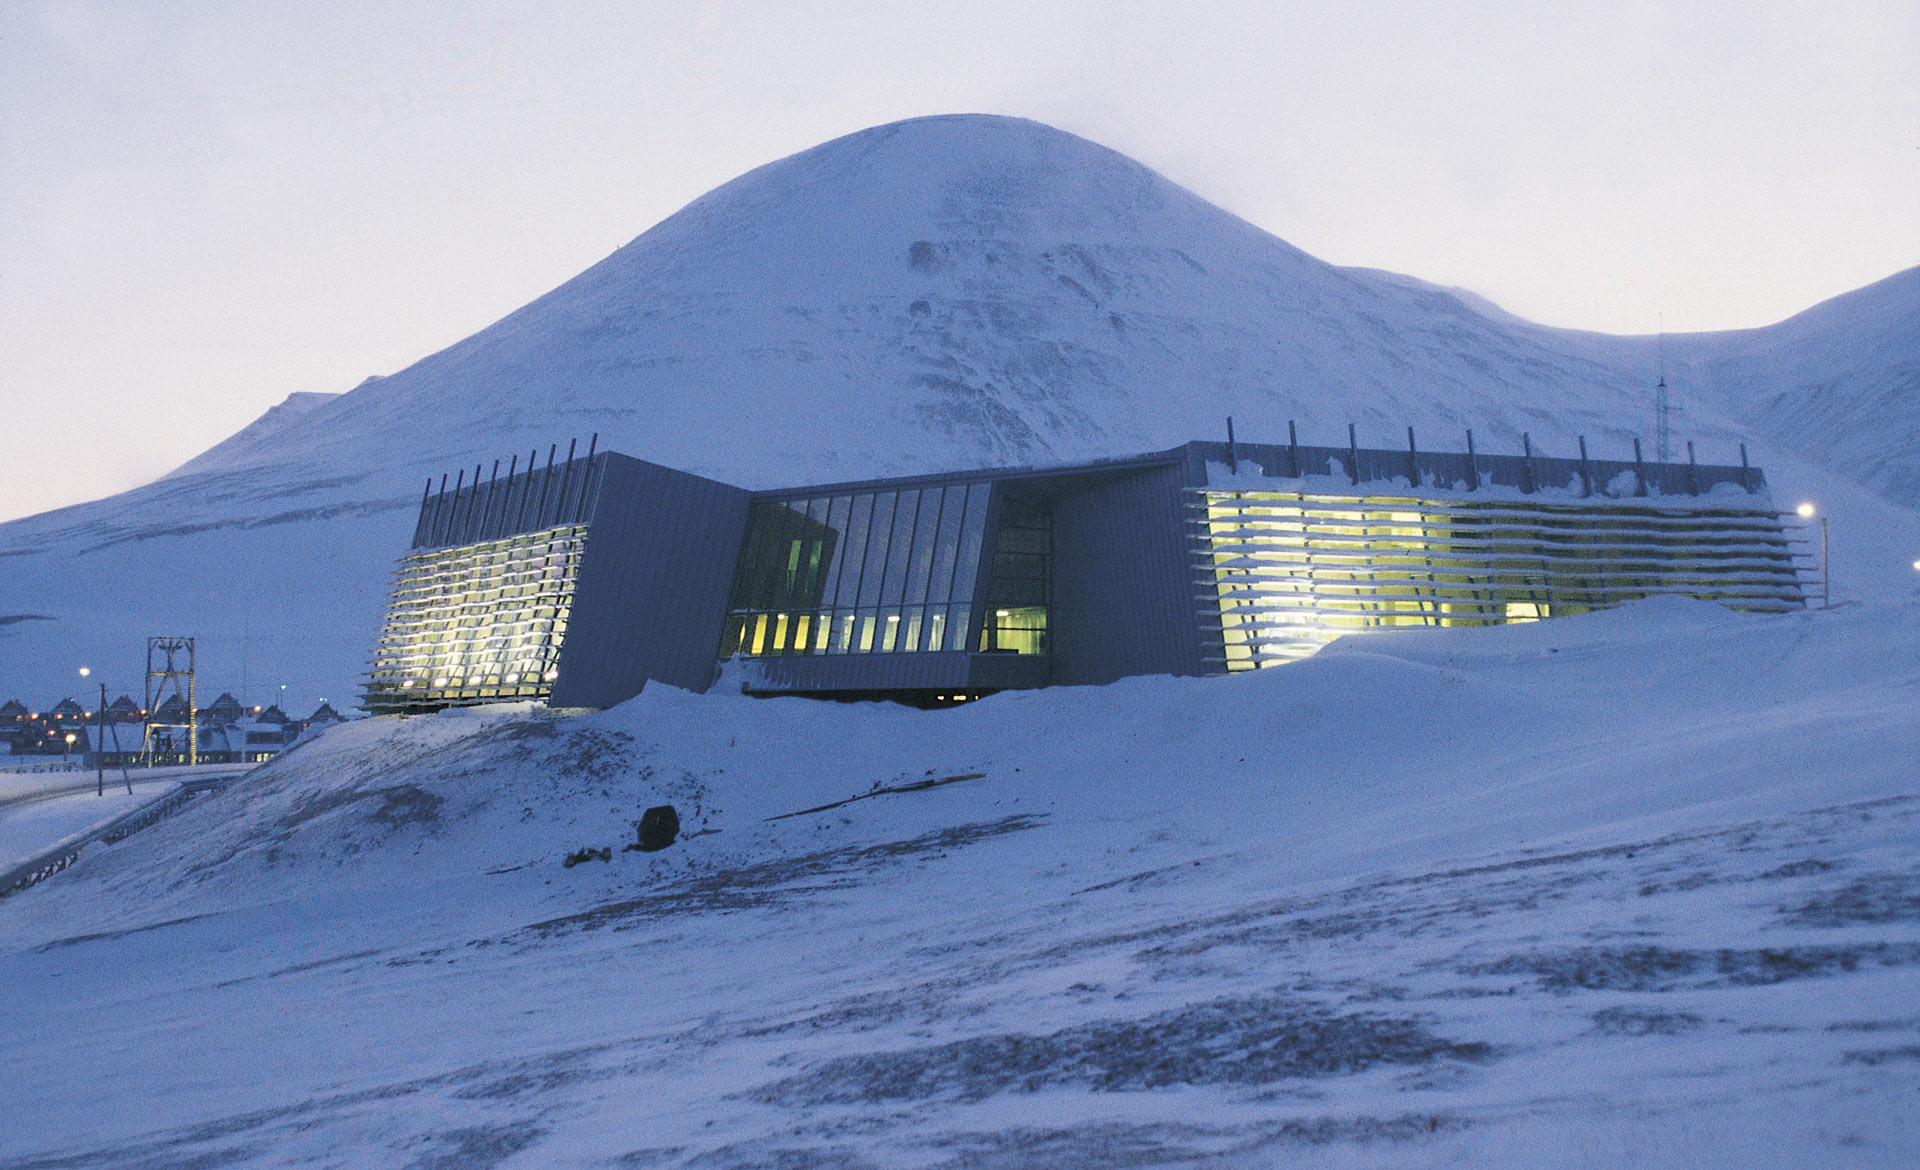 Adminidtration Builing for Governor of Svalbard